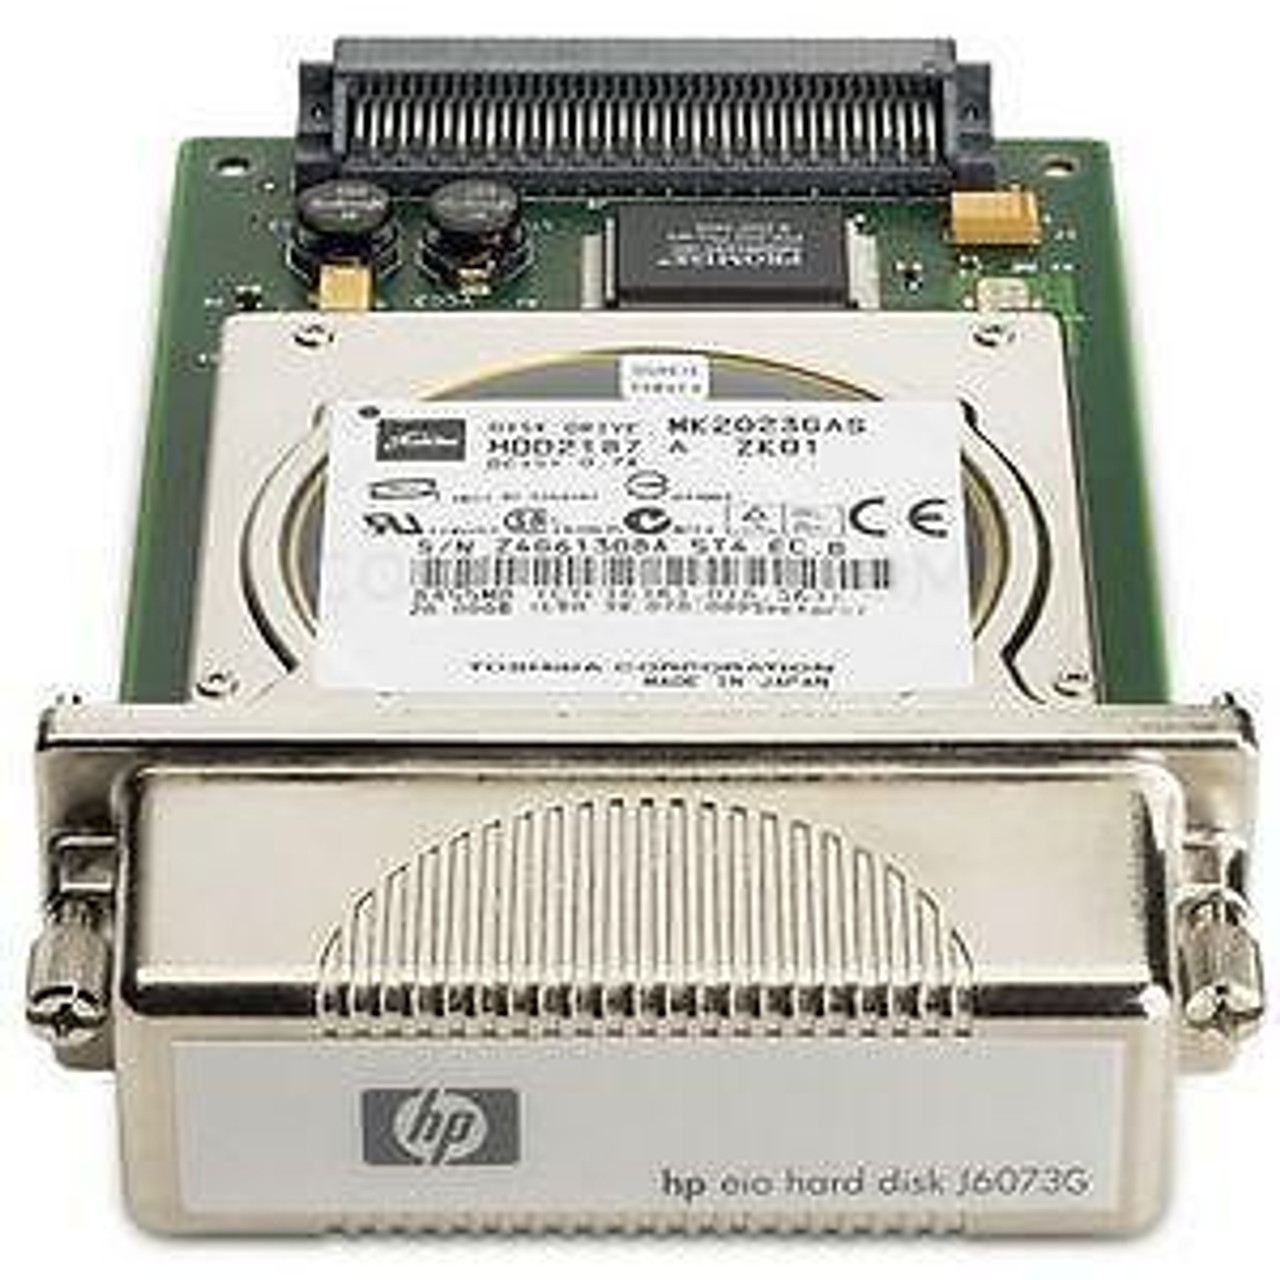 HP eio 20GB Hard Drive